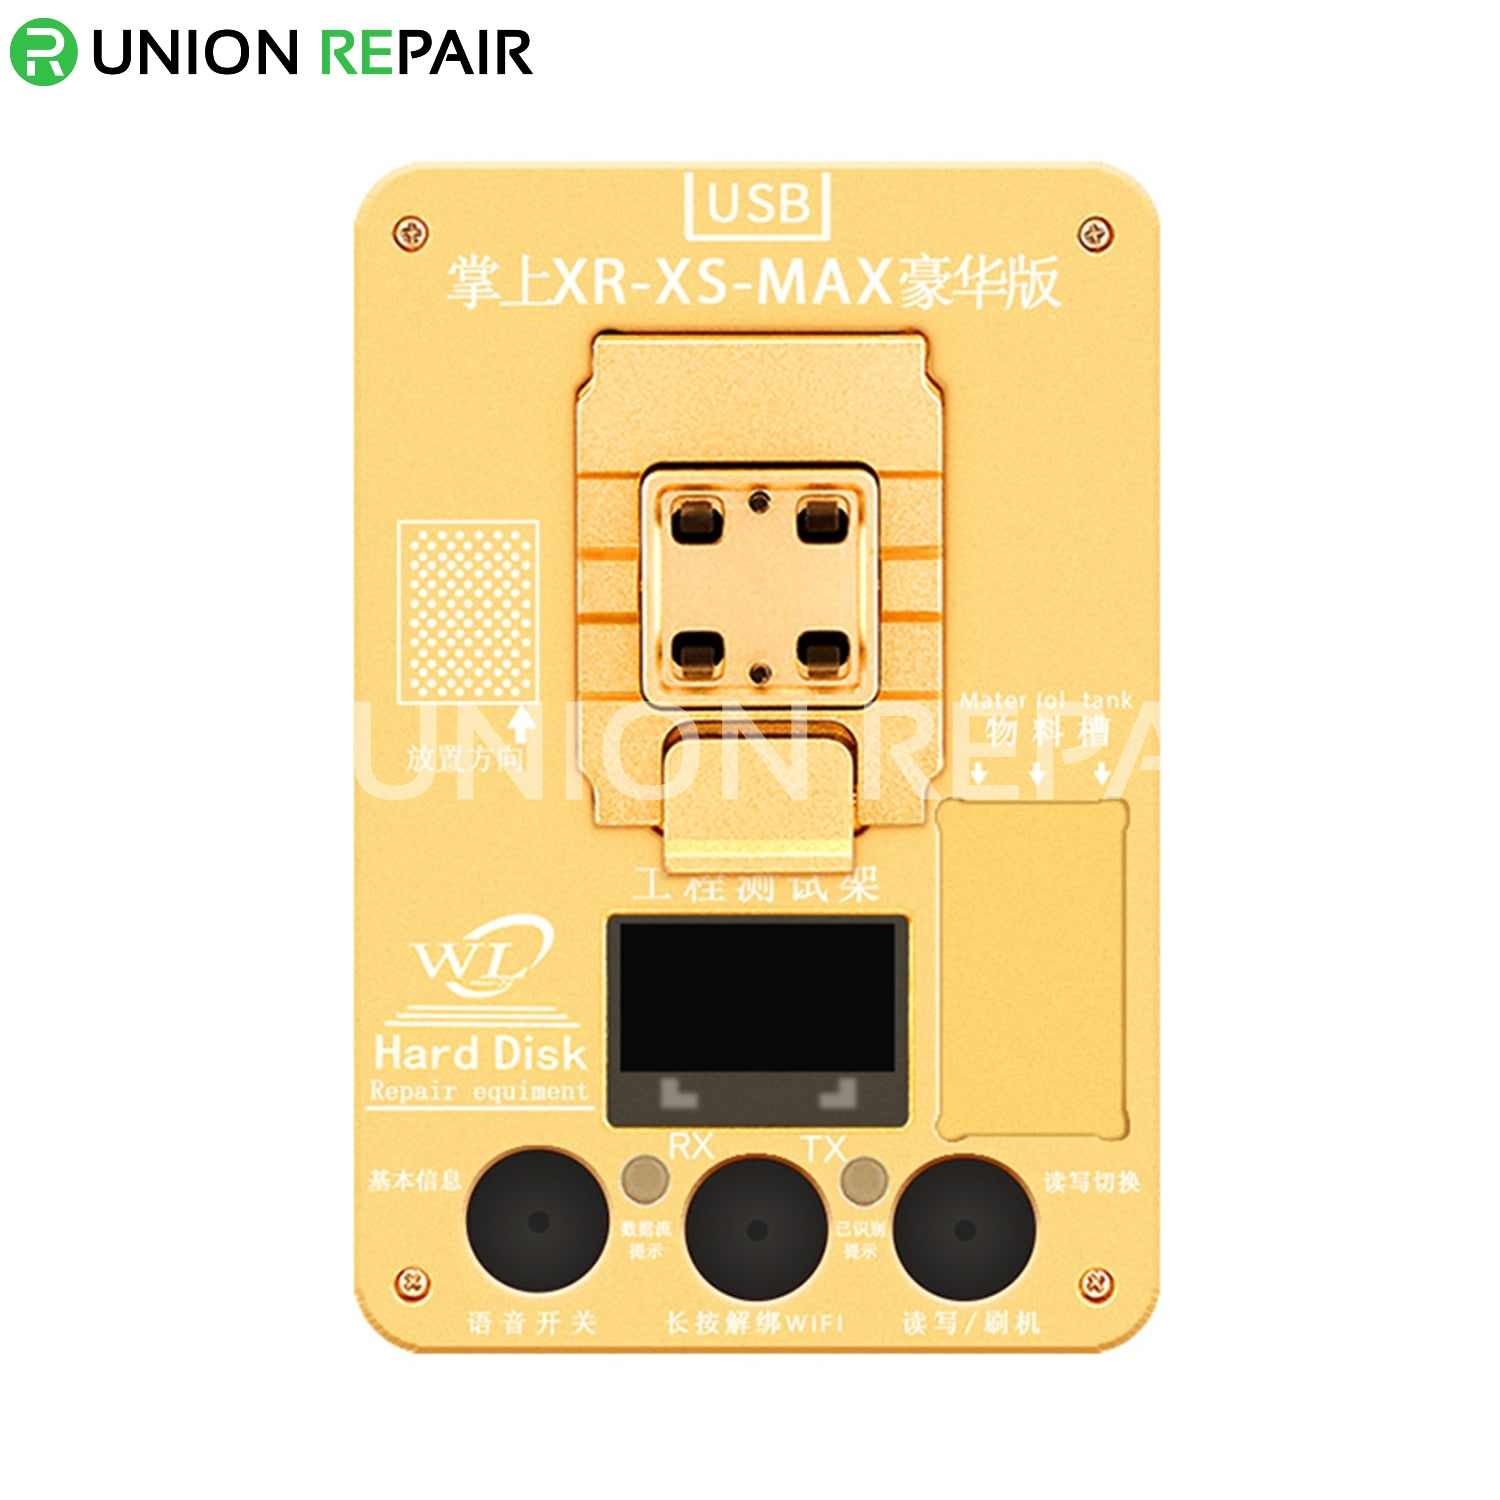 WL PCIE NAND Programmer NAND Fixture For iPhone XR/XS/XS MAX